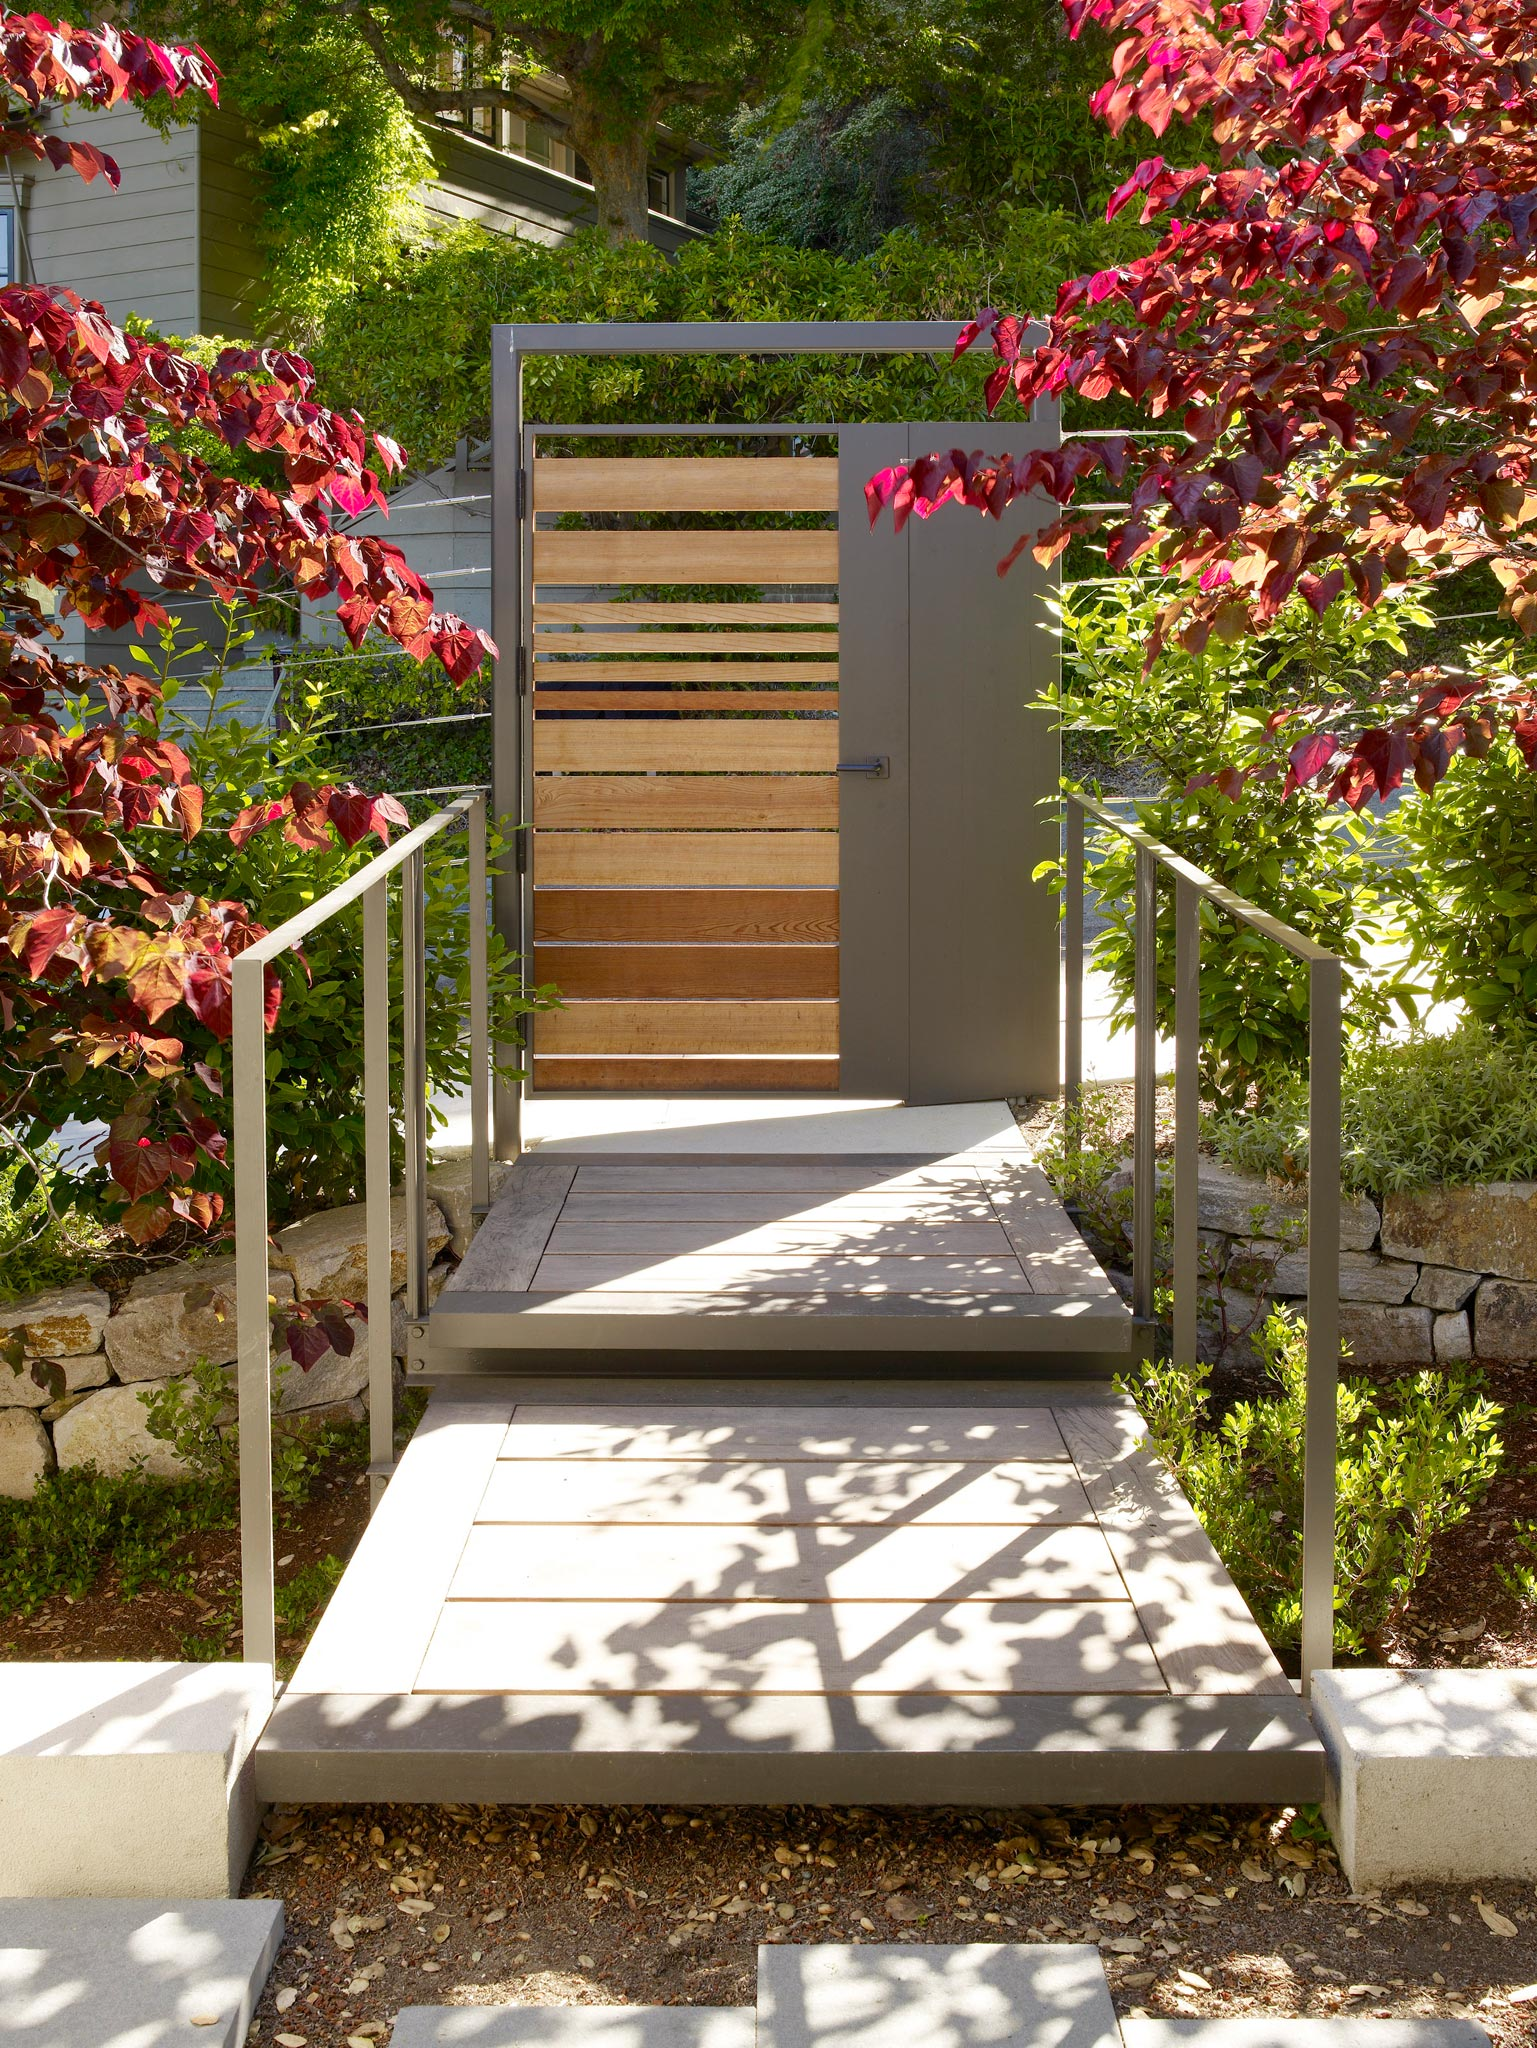 Claremont modern aesthetic pavillon house guest outside view of gate